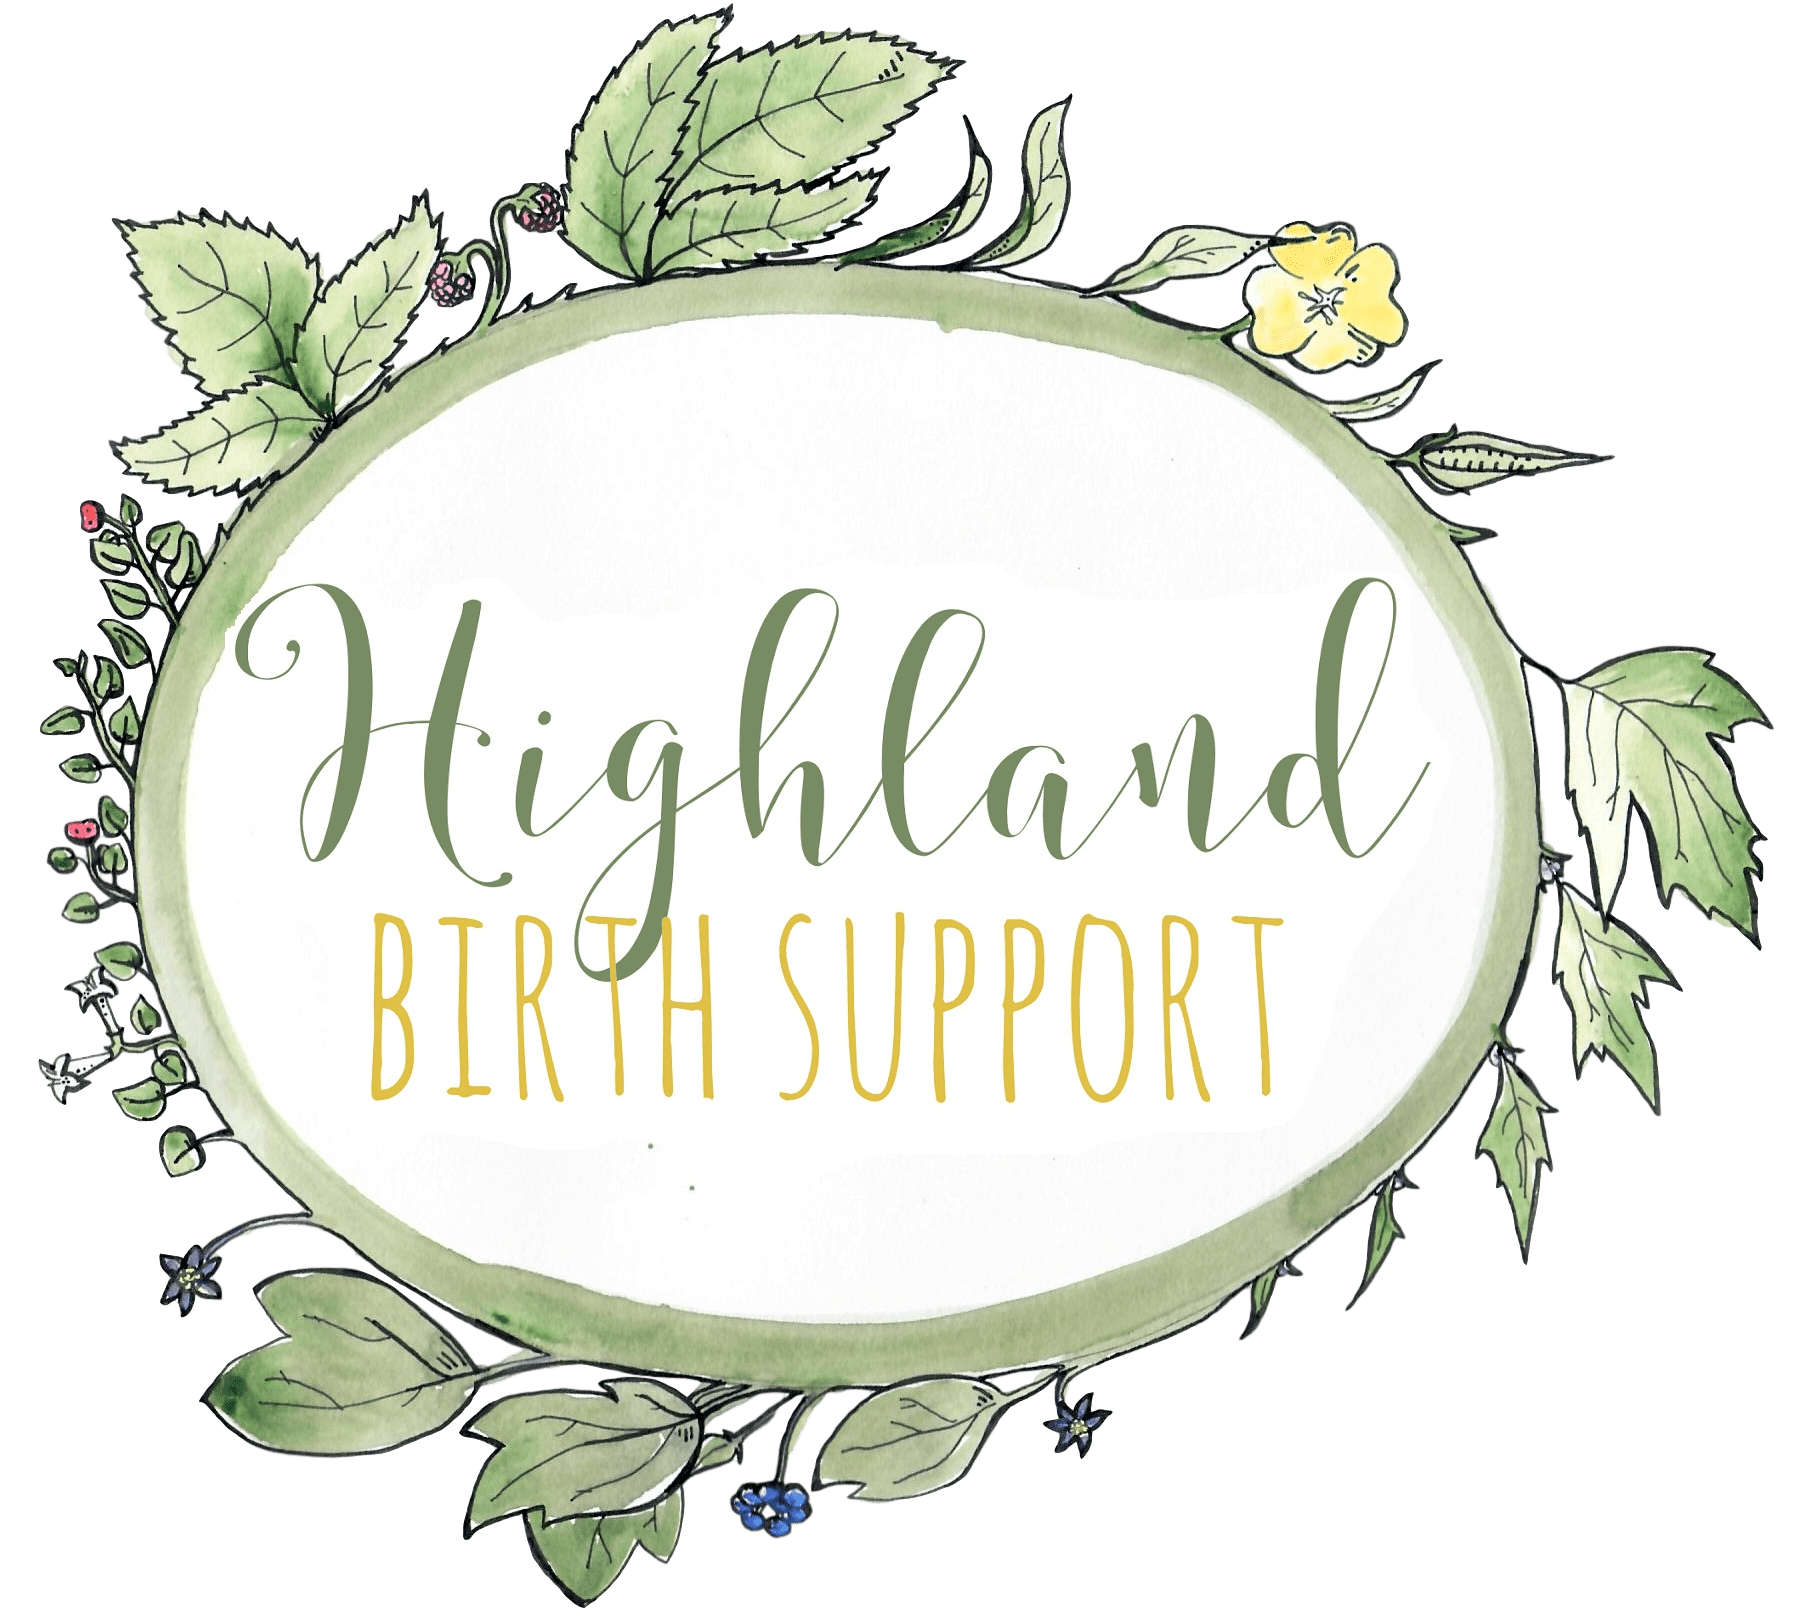 Highland Birth Support